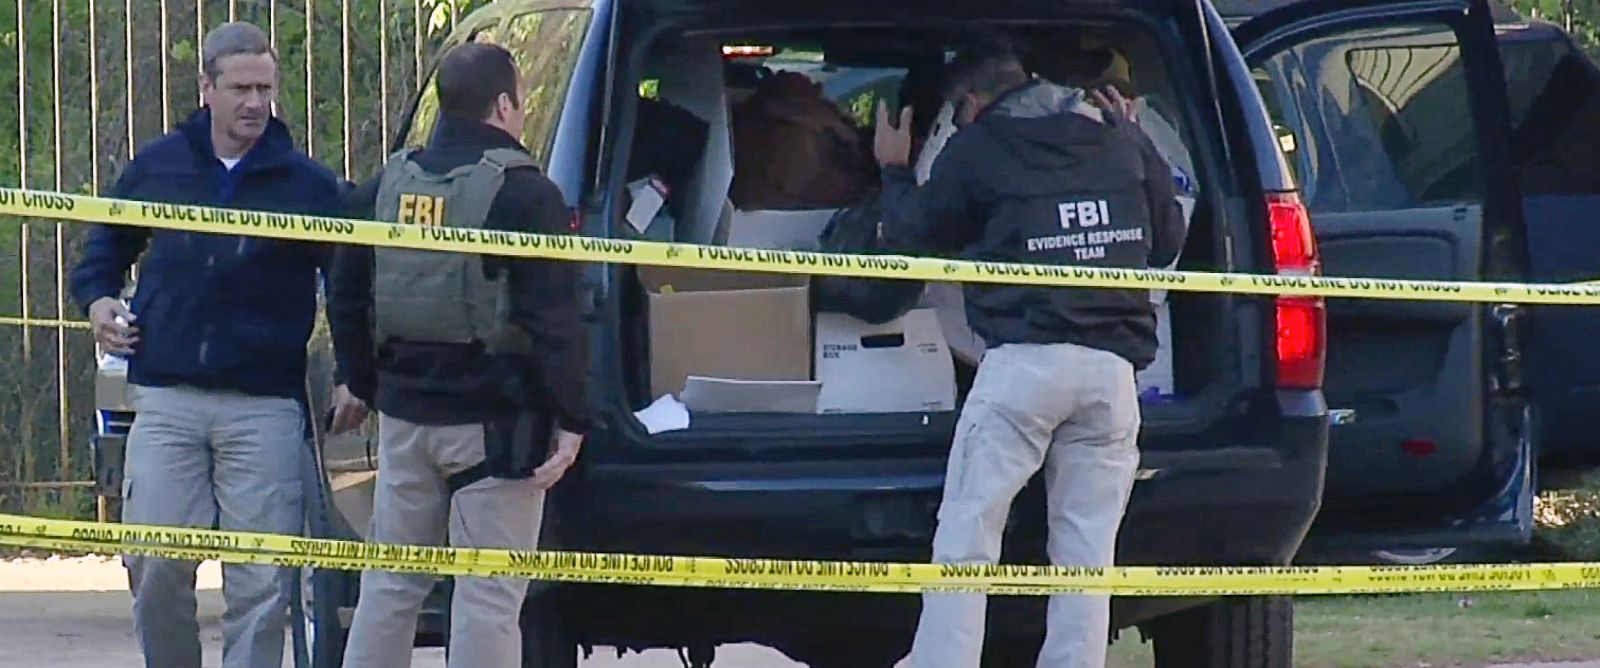 PHOTO: In this photo taken from video, FBI agents collect evidence at an apartment complex on April 10, 2014 in Atlanta where federal agents rescued kidnap victim Frank Arthur Janssen, of Wake Forest. N.C.